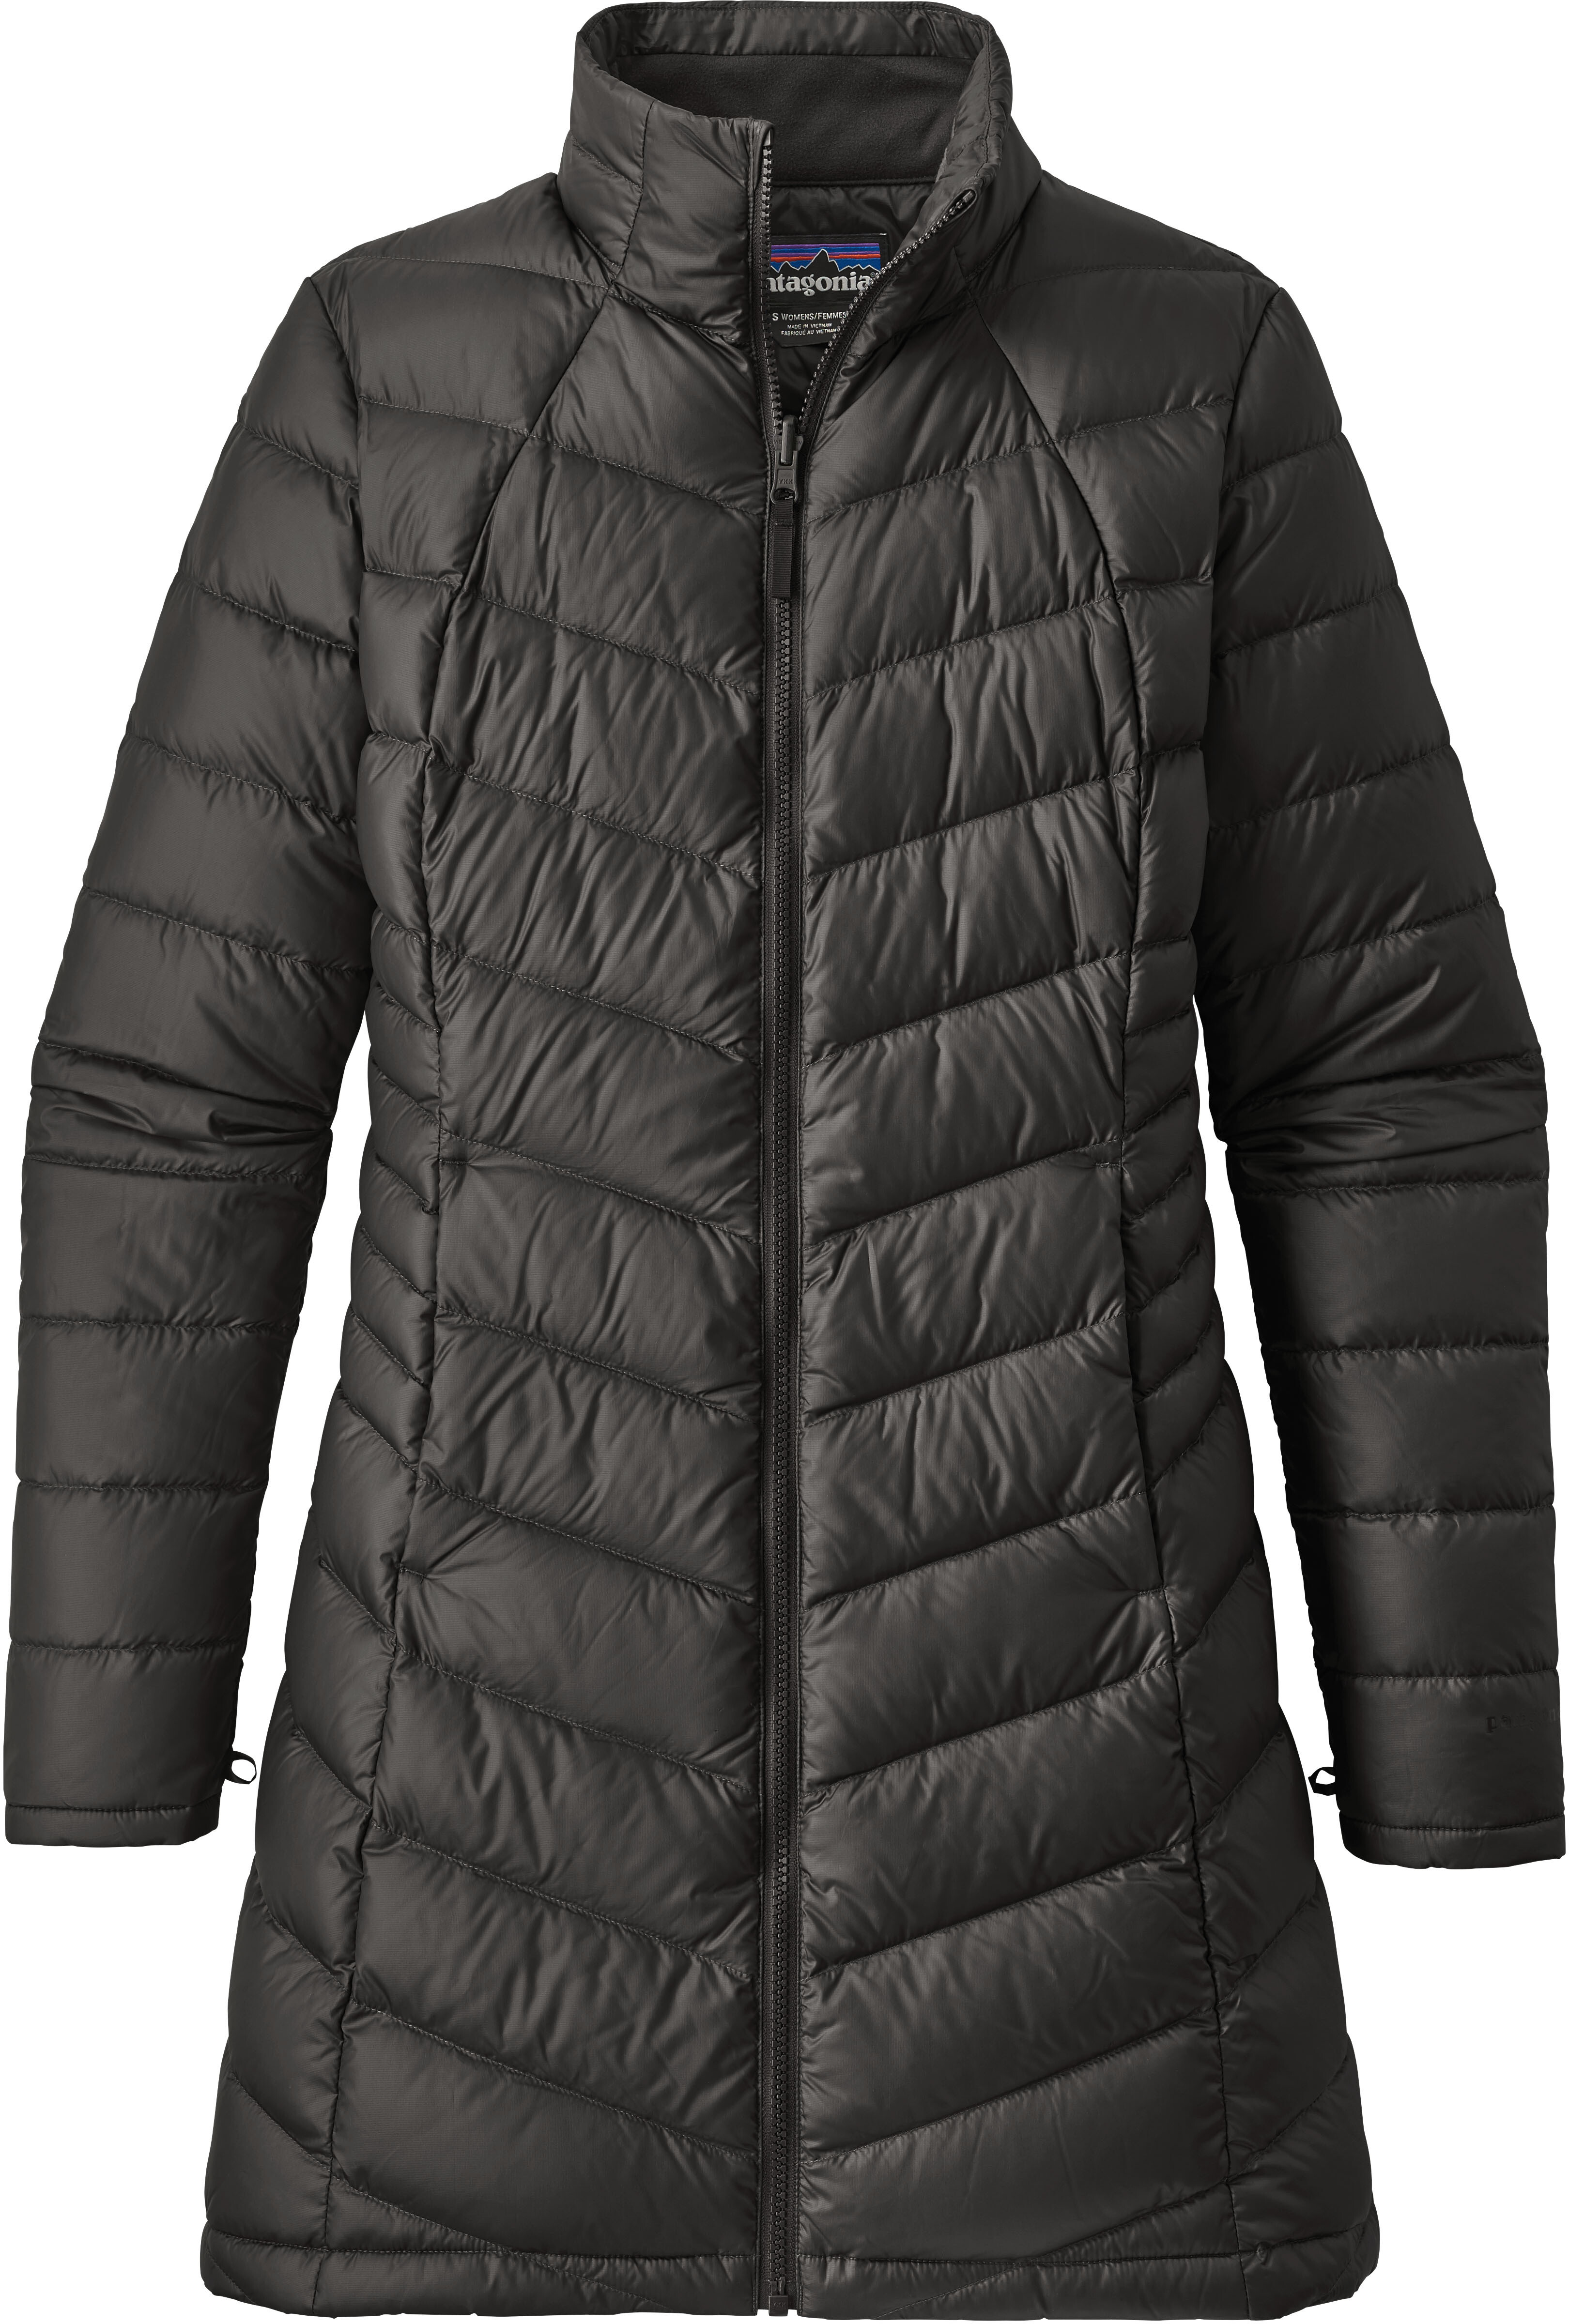 03e8c40aa6 Patagonia Tres 3-in-1 - Chaqueta Mujer - negro